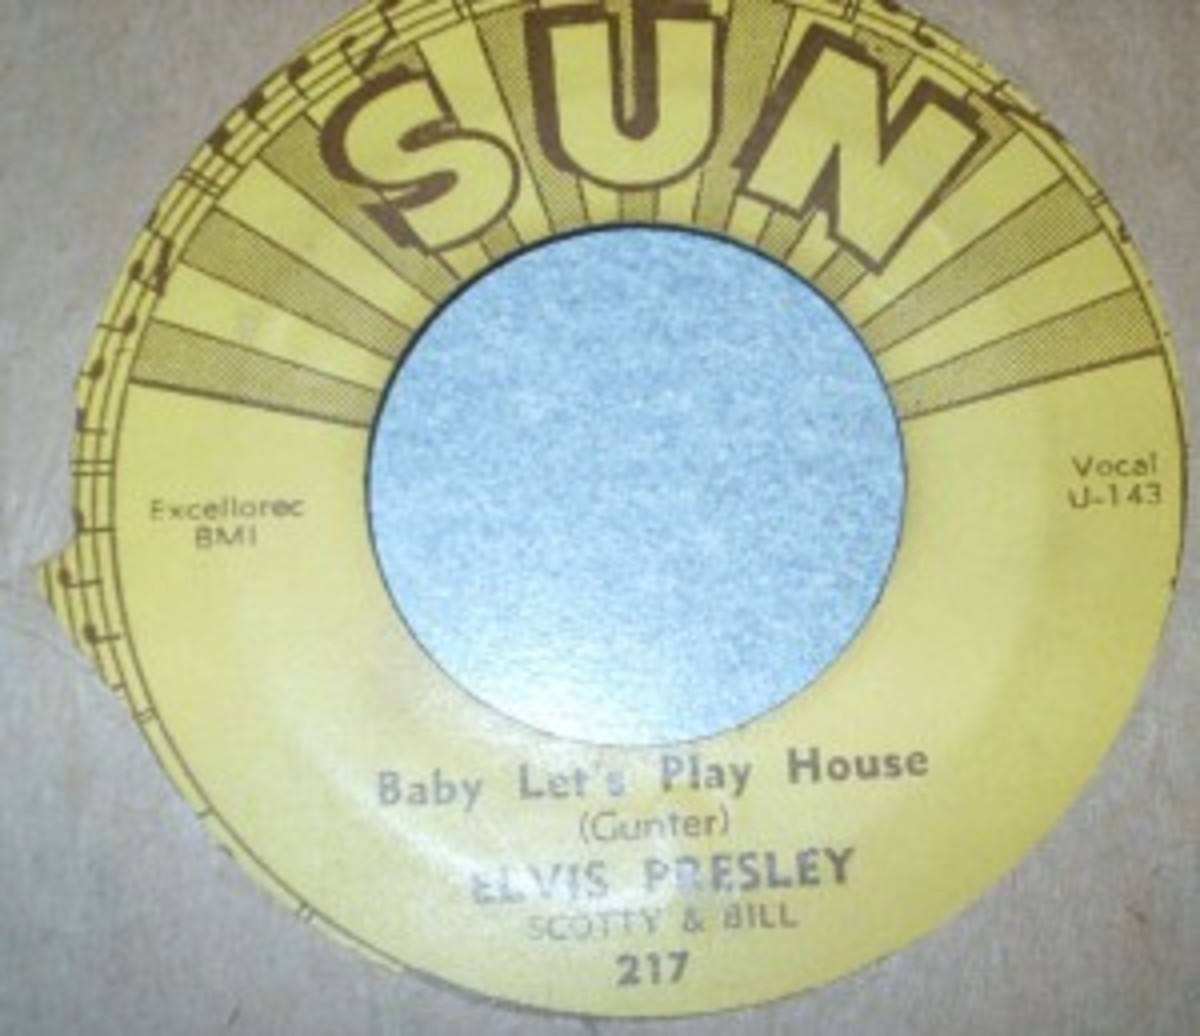 3. One of a set of five Elvis Presley Sun 45s.